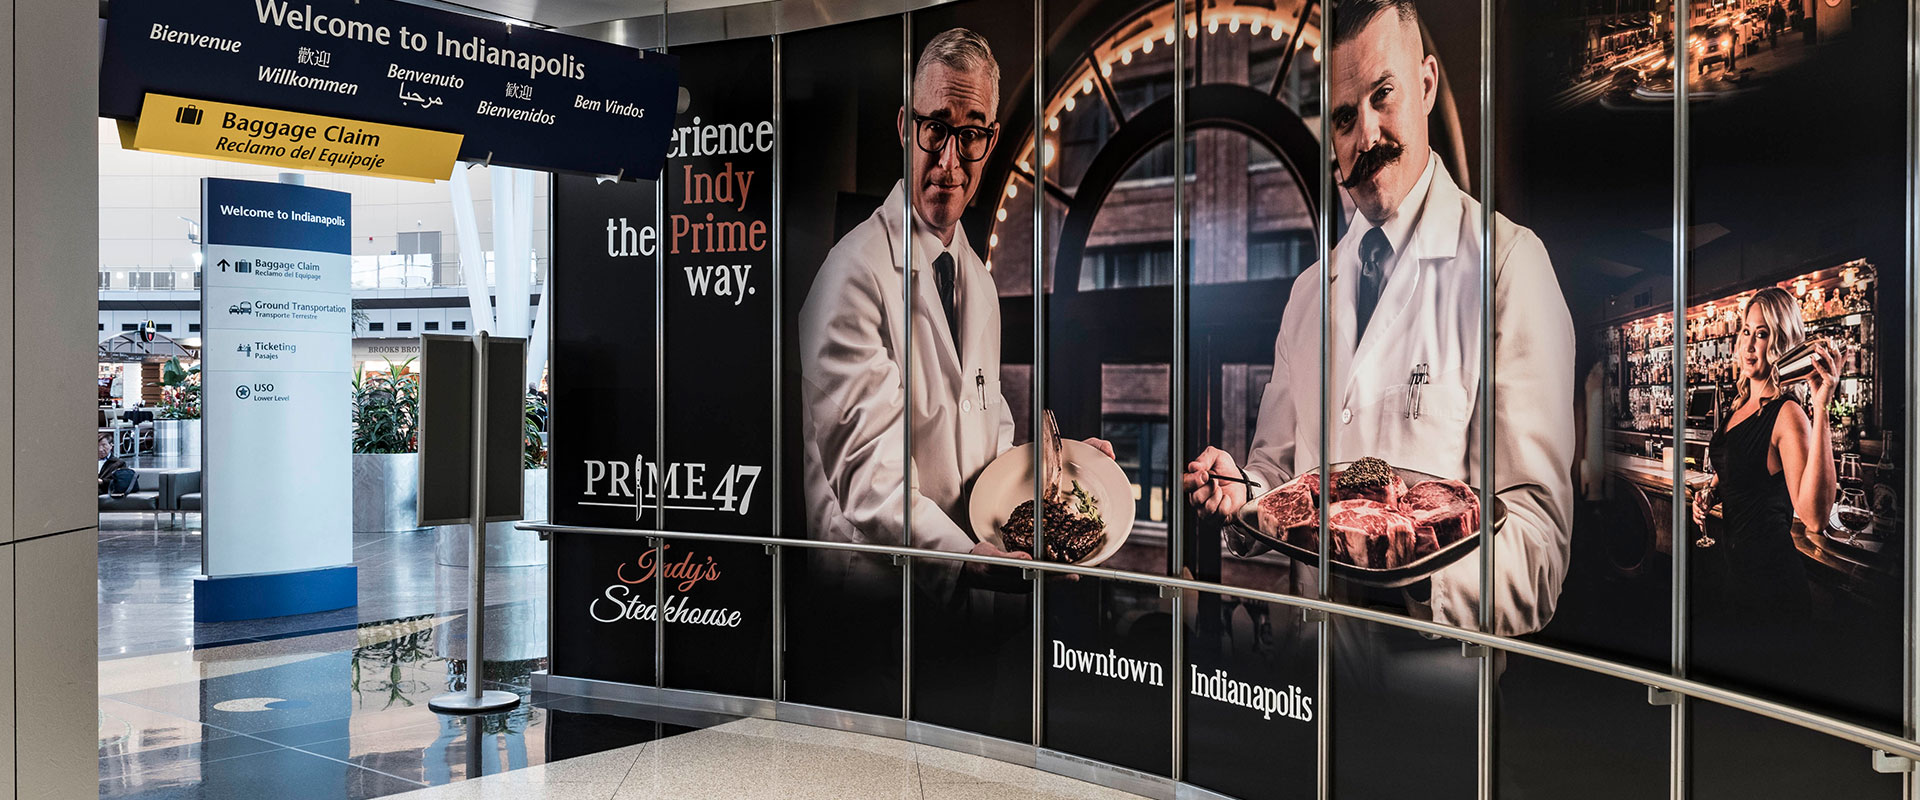 Prime47Airport Print Advertising: Prime 47